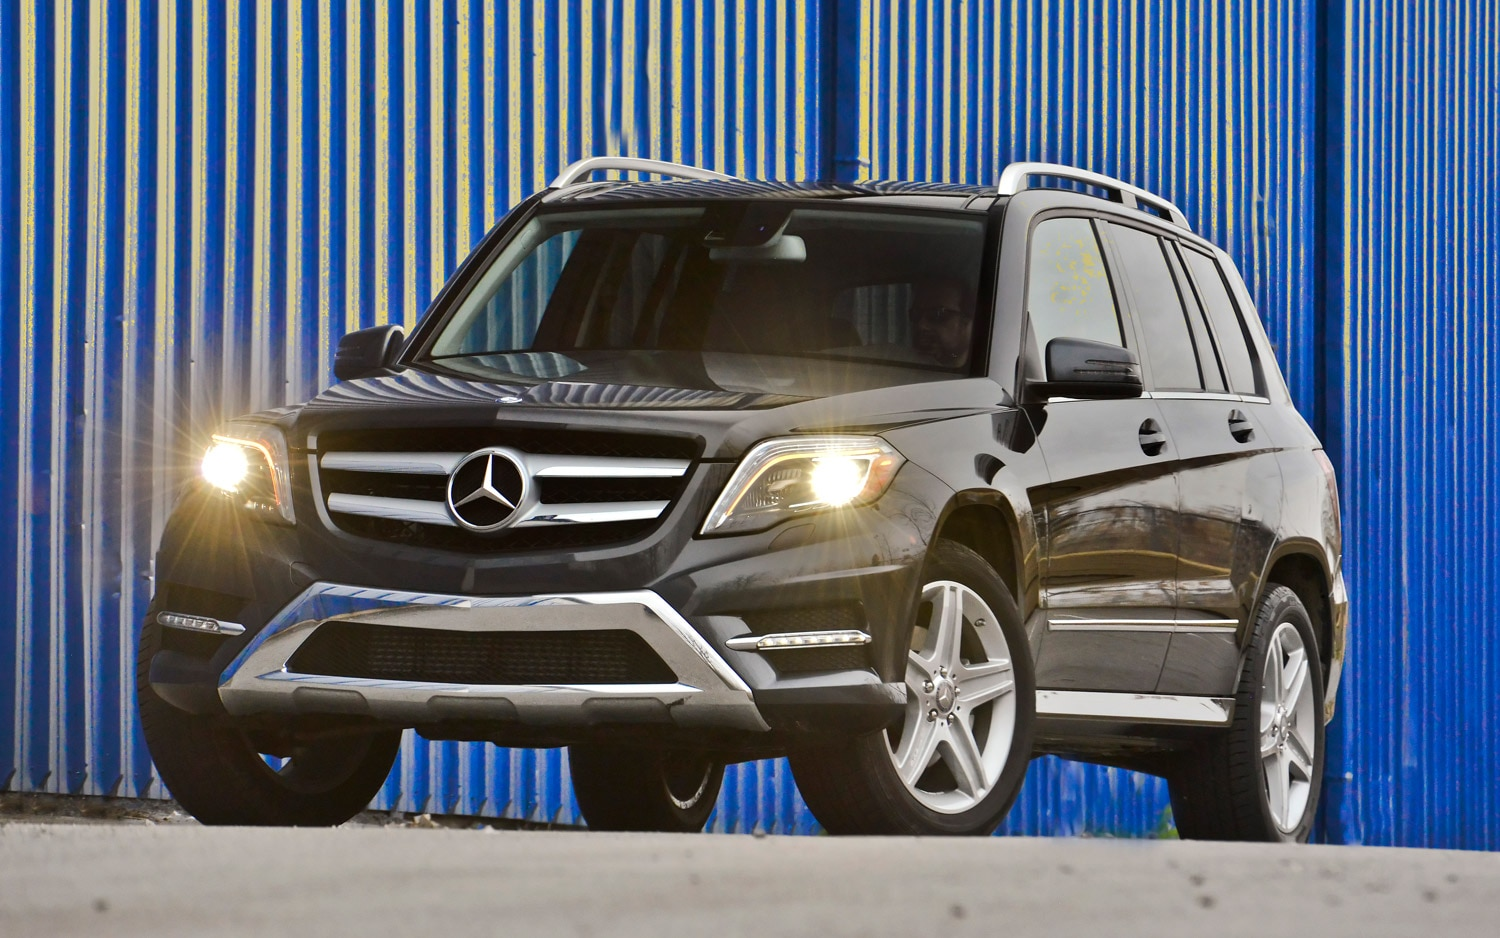 2013 Mercedes Benz GLK250 BlueTEC Front Three Quarter1